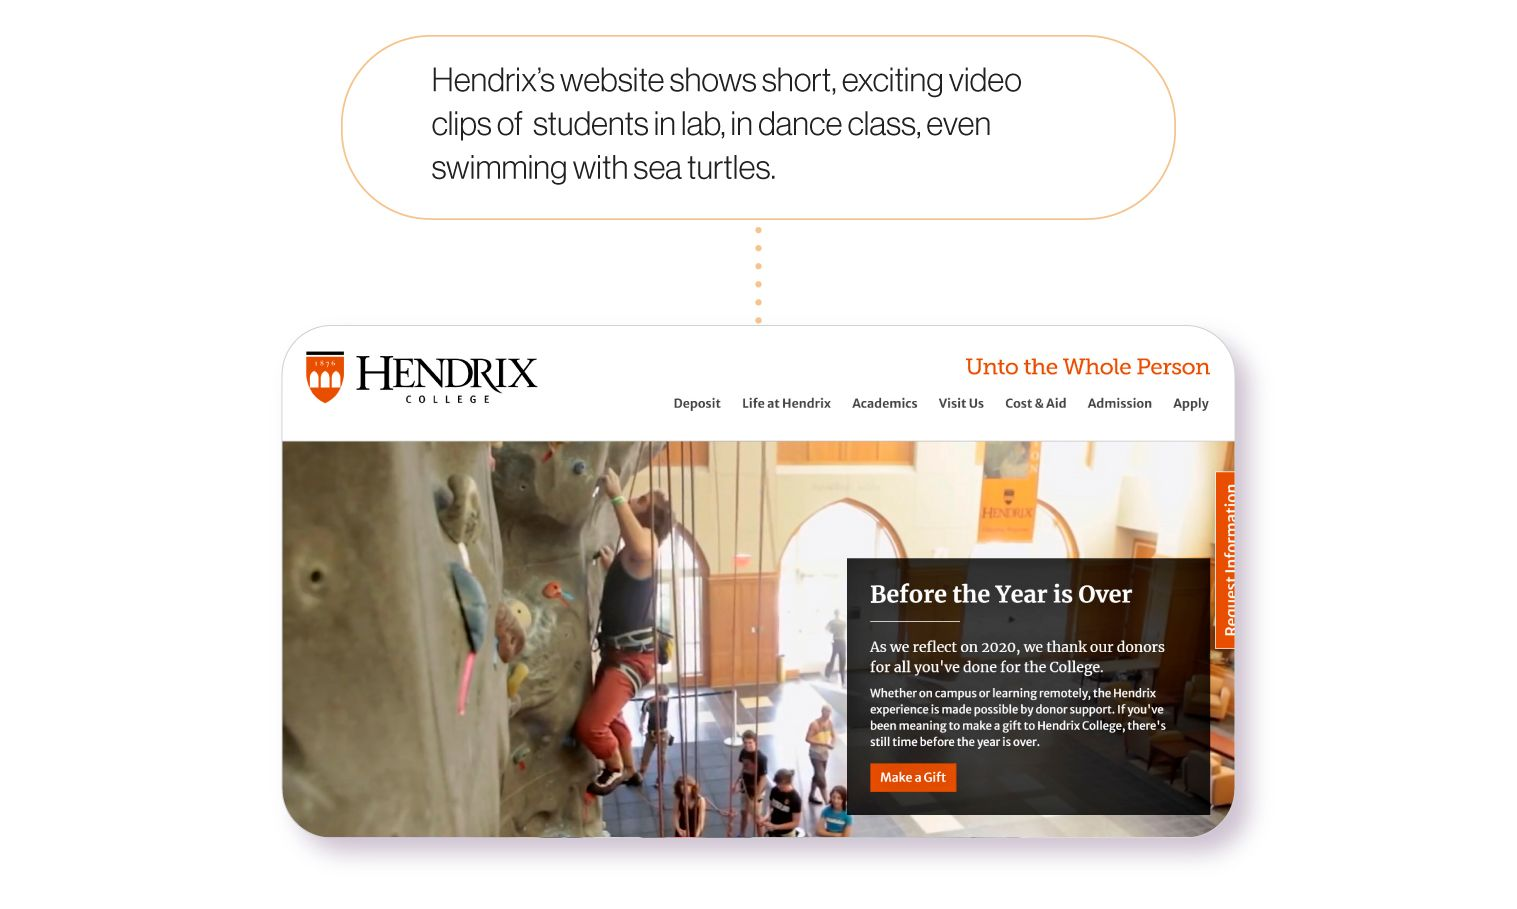 Image: Hendrix College's homepage. Hendrix's webpage shows short, exciting video clips of students in lab, in dance class, even swimming with sea turtles.